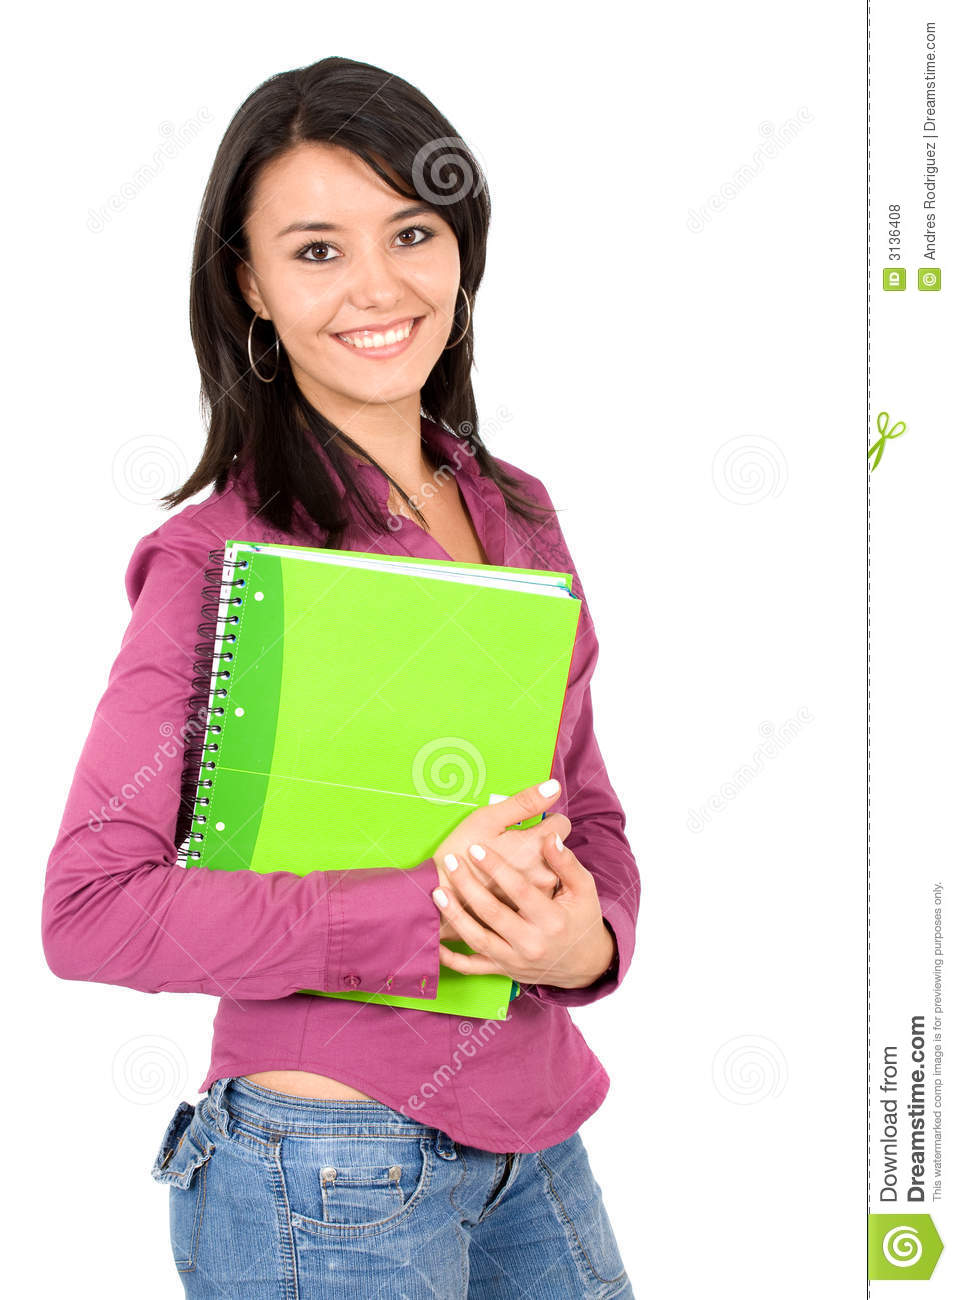 Female University Student Royalty Free Stock Photos - Image: 3136408